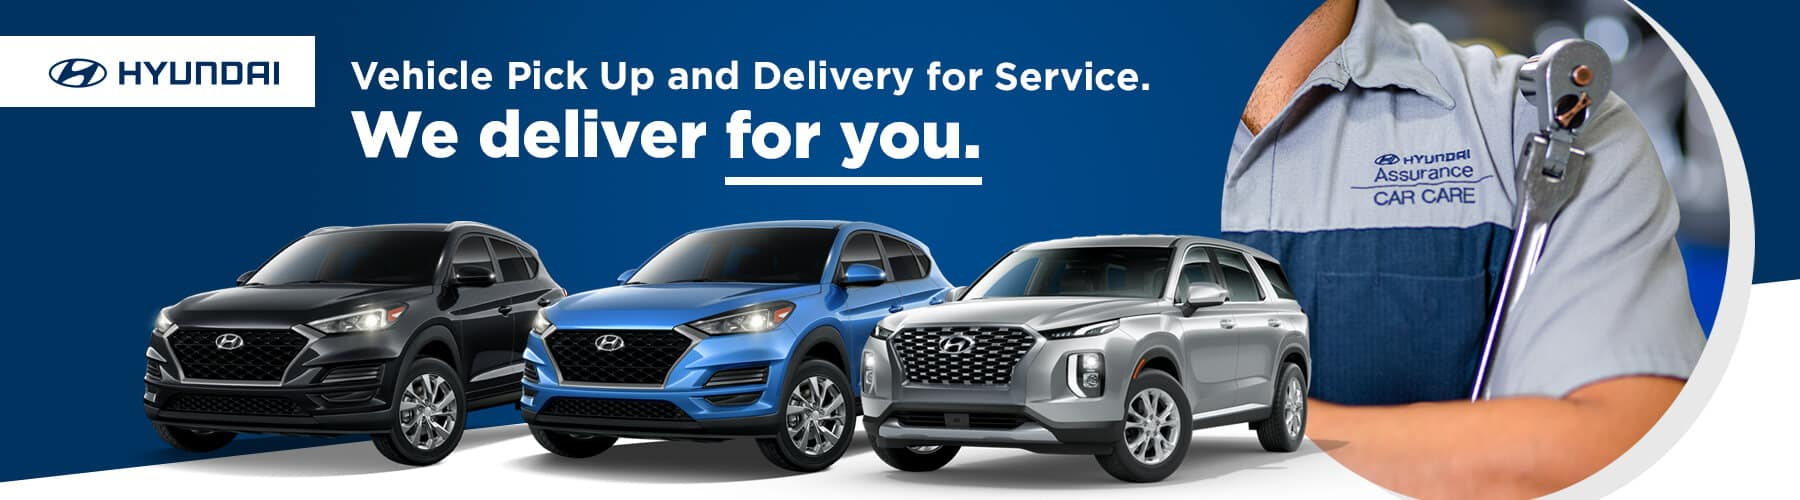 Vern Eide Hyundai Sioux City Delivery Service Banner